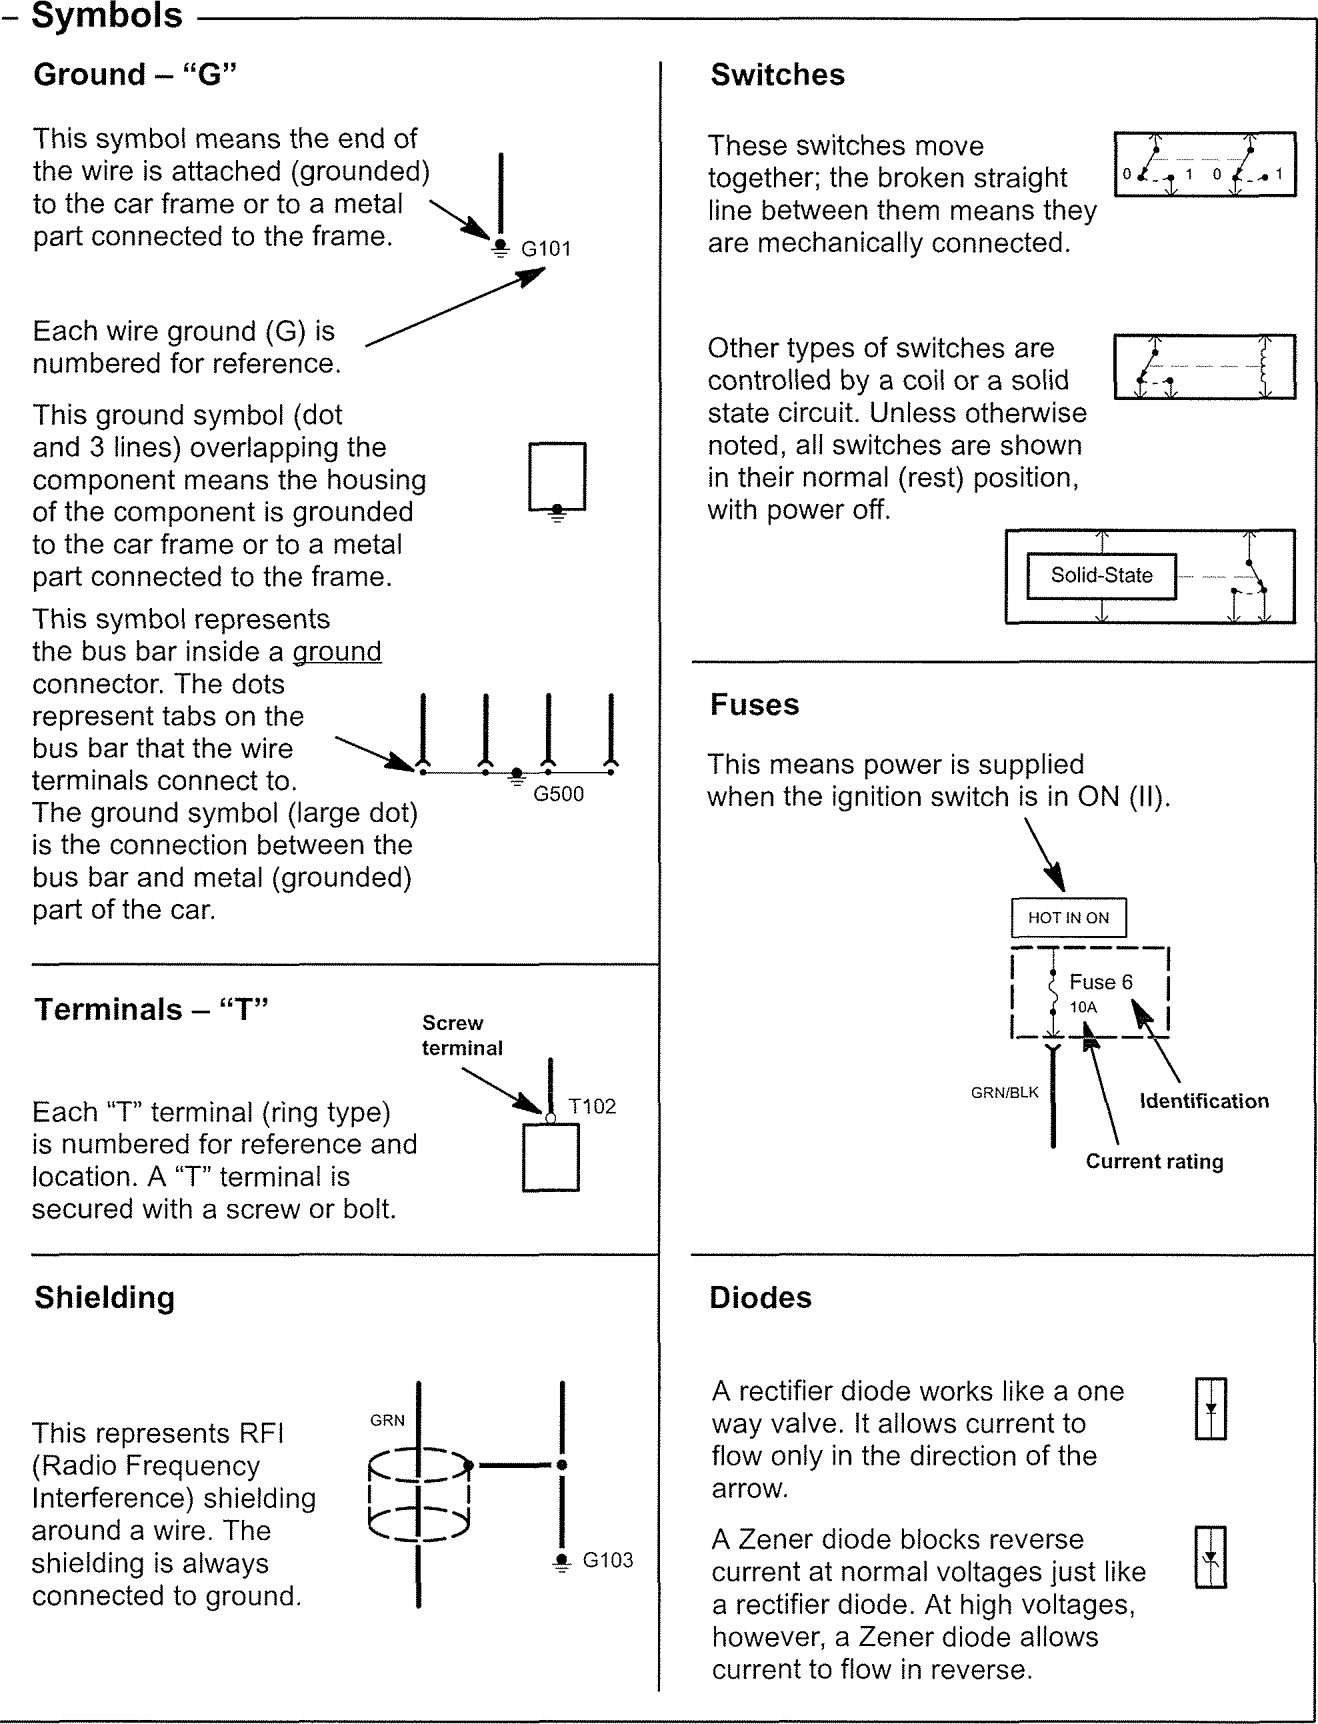 Acura Tl 2005 2007 Wiring Diagrams Symbol Id Carknowledge For Ground On Diagram Part 3